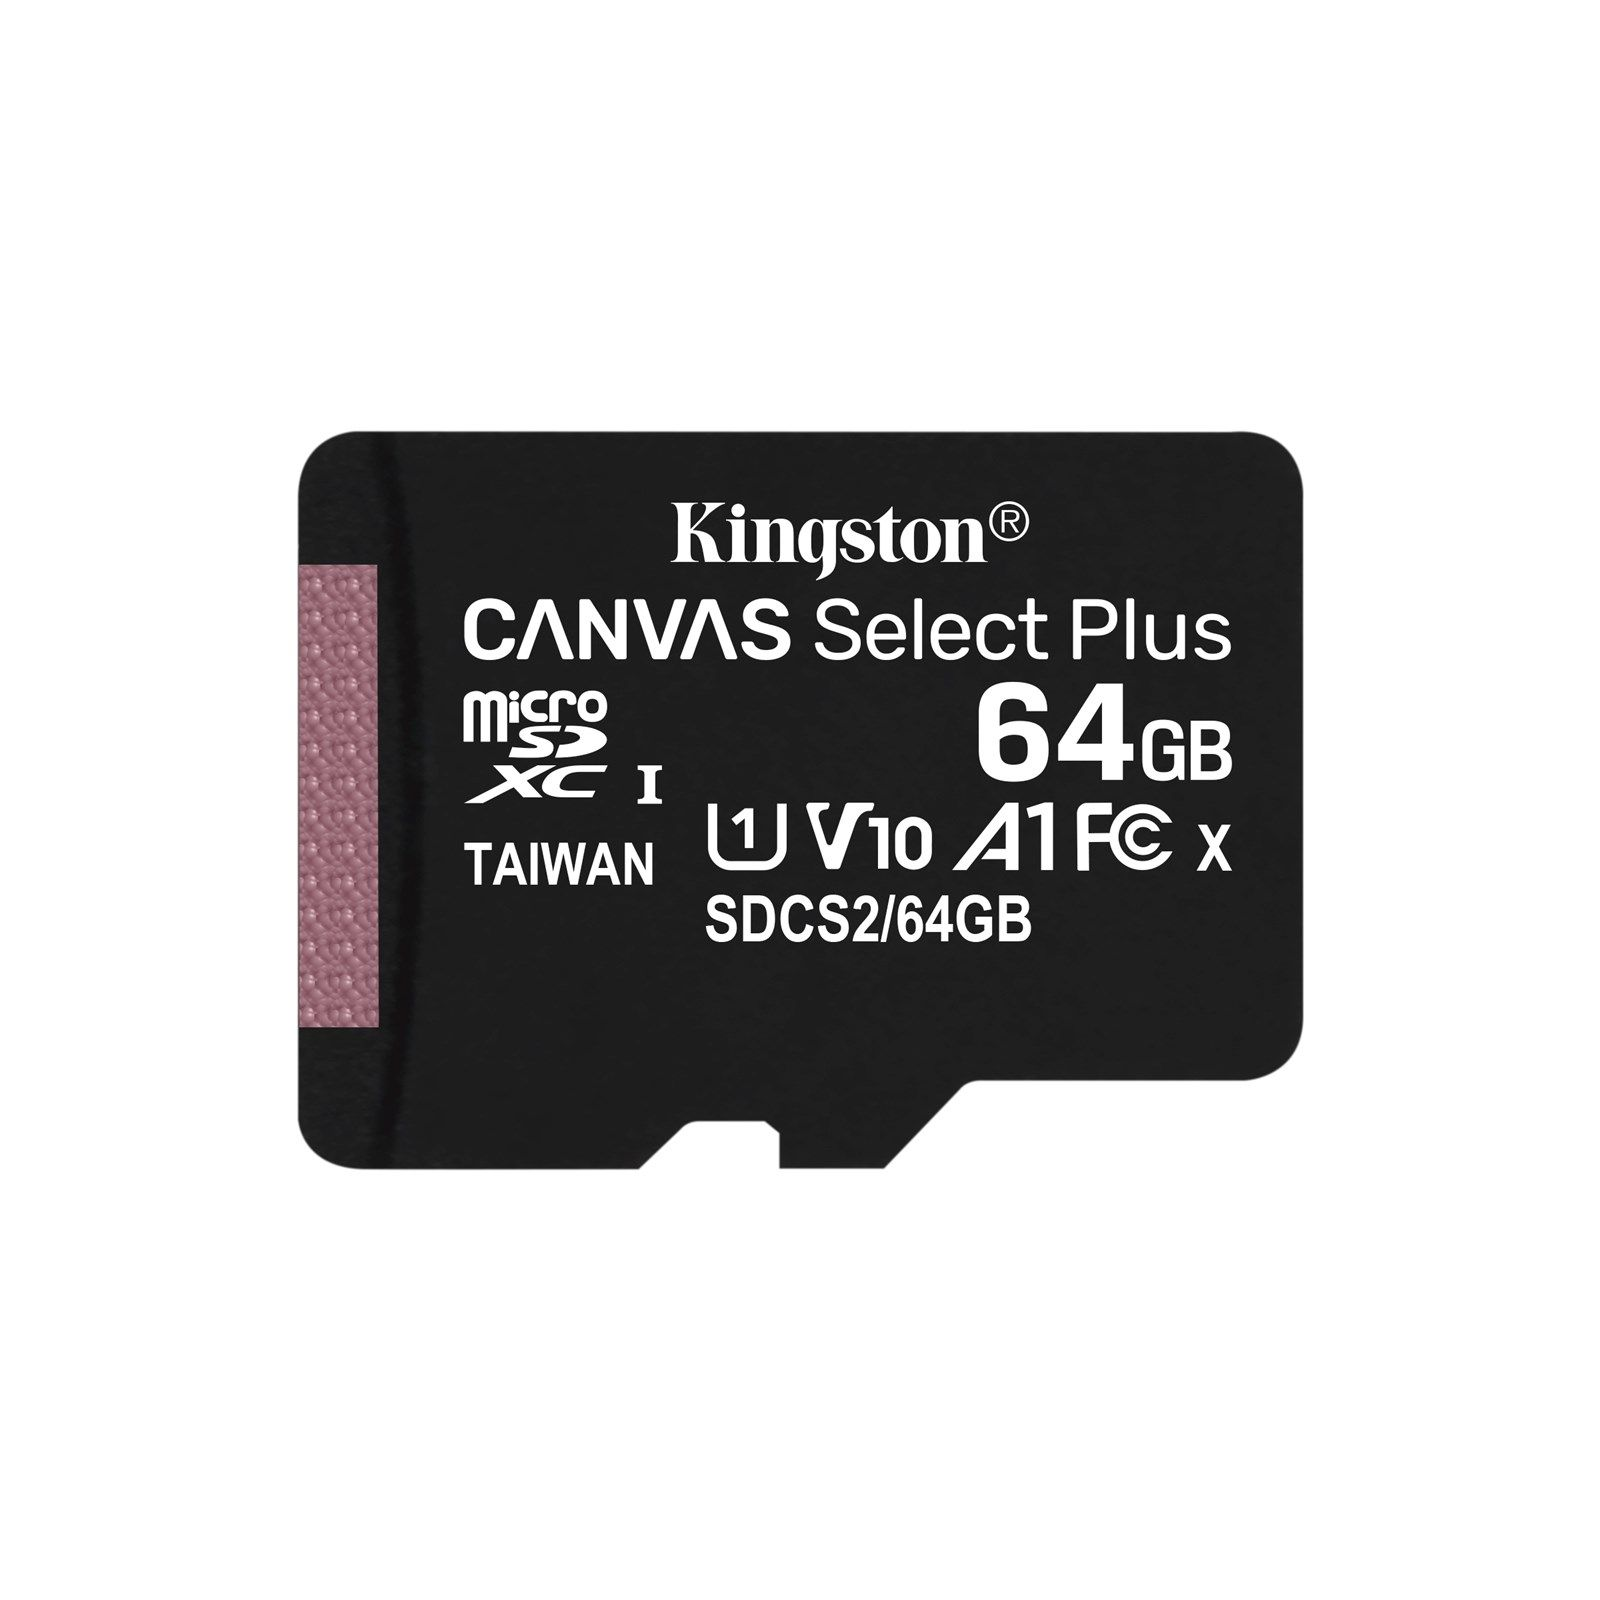 64GB microSDXC Canvas Select Plus A1 Class 10 UHS-I (SDCS2/64GB)